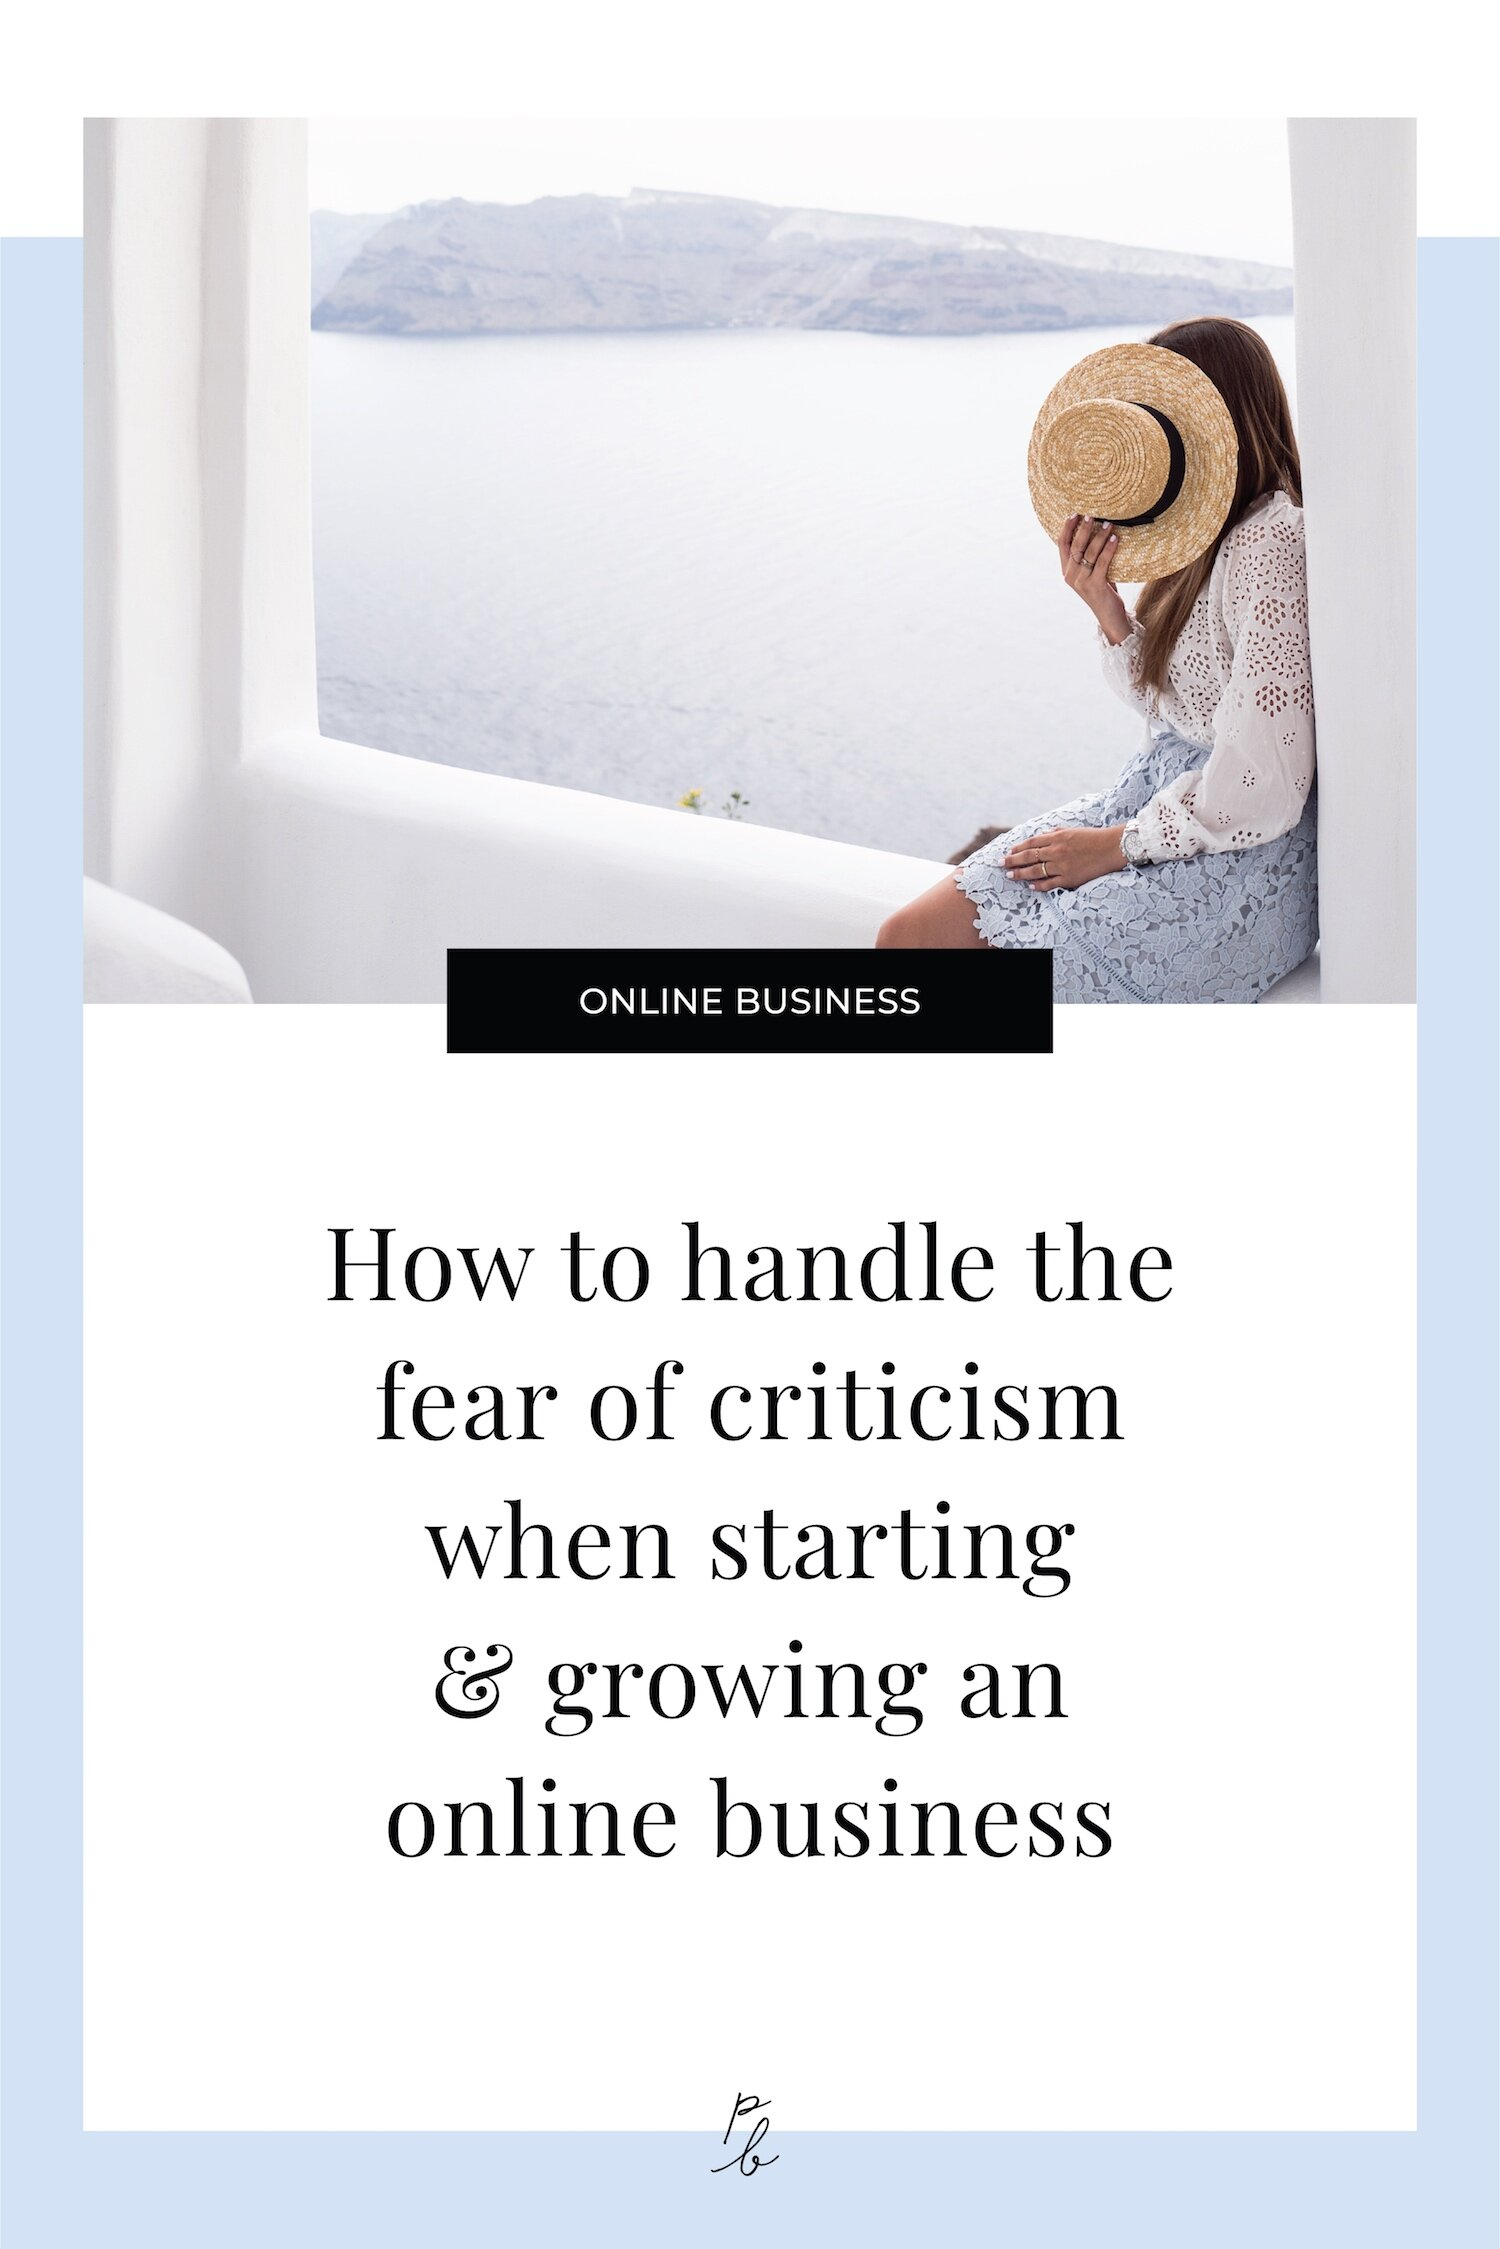 How to handle the fear of criticism when starting & growing an online business.jpeg